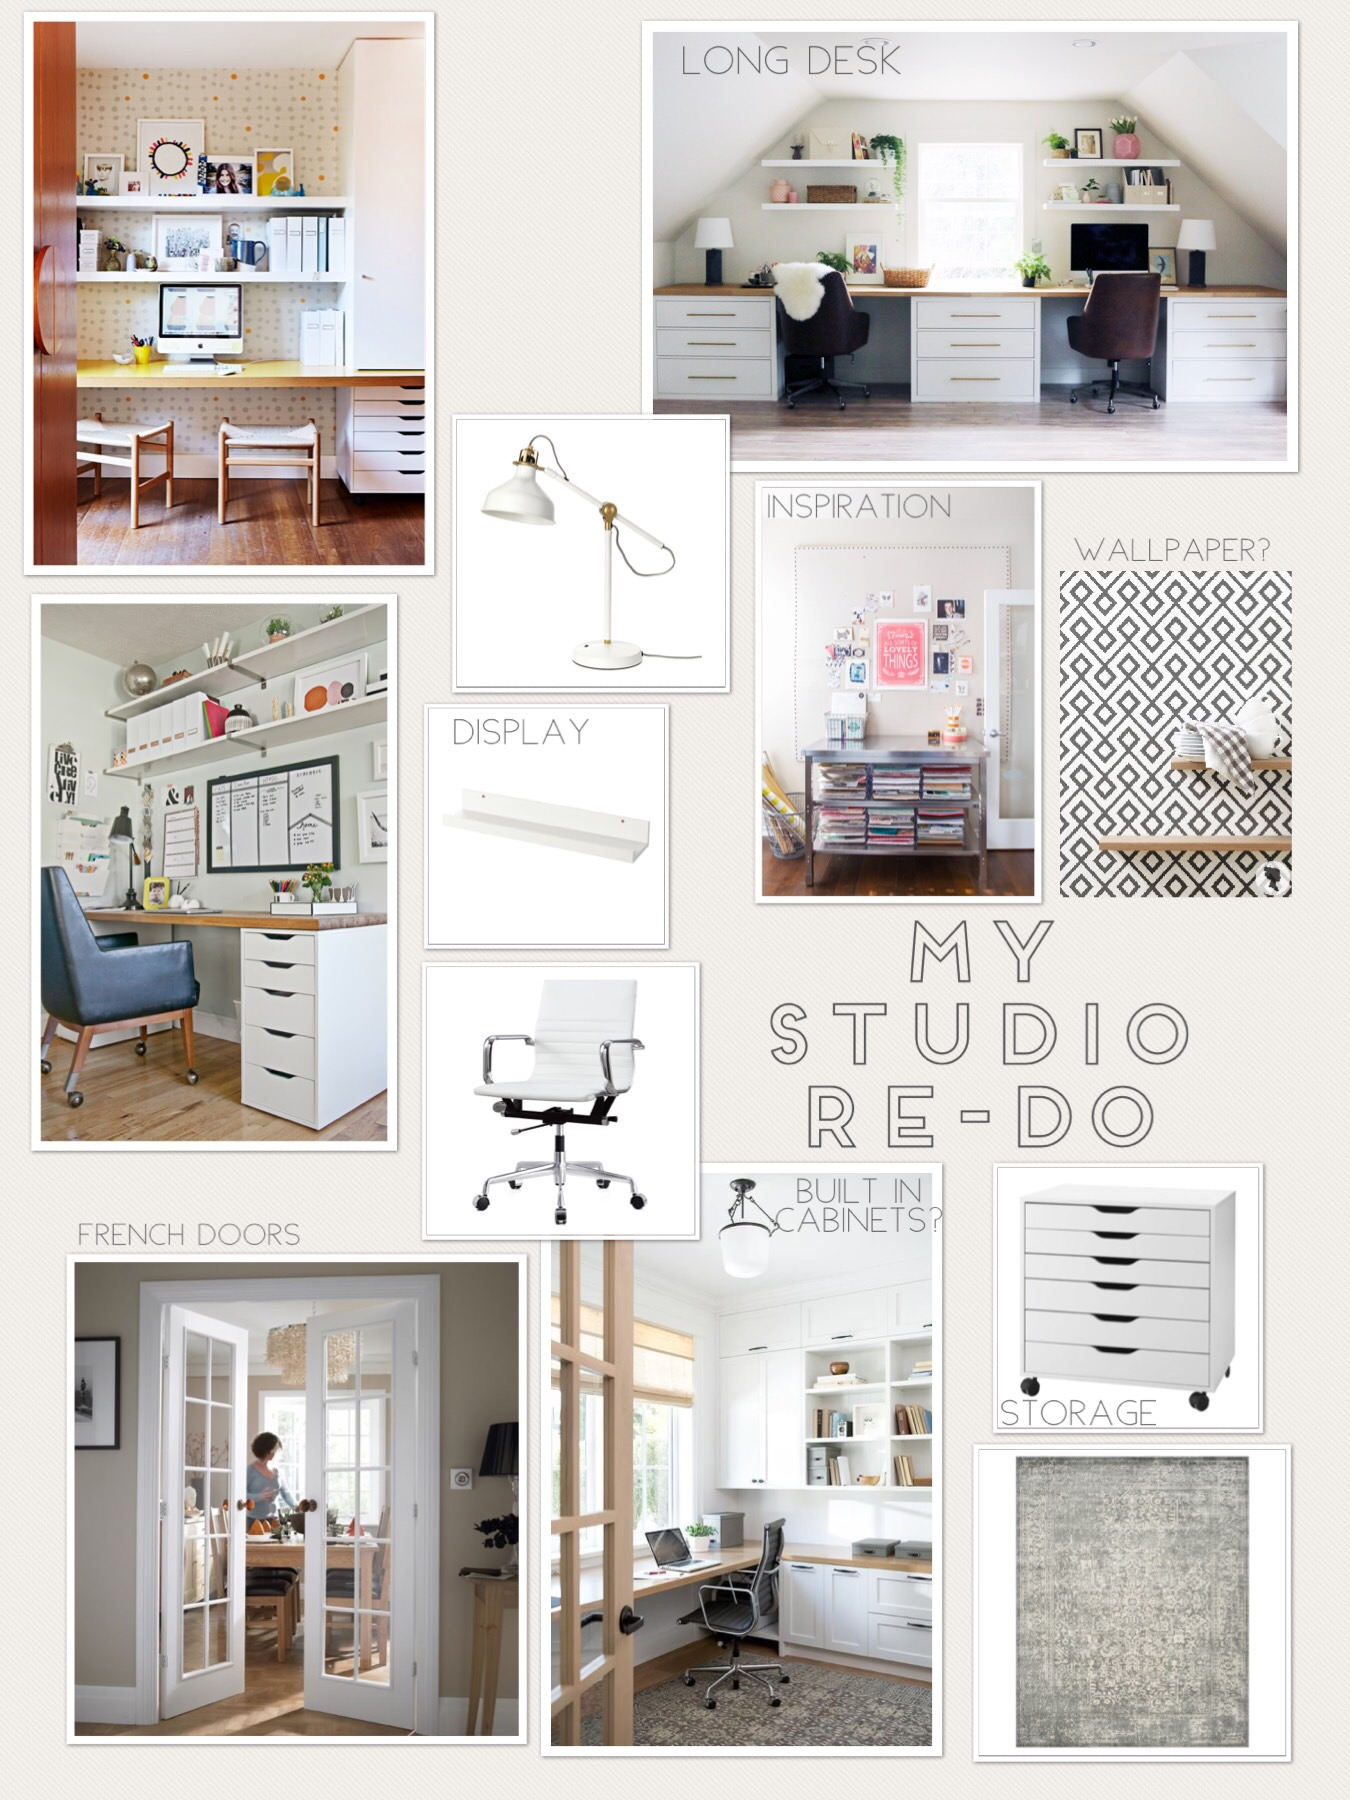 Sources (when known, top to bottom): Office nook from a profile on  The Design Files , Studio from  Jones Design Co. ,  Ranarp work lamp  (IKEA), Large pin board project from  Handmade Mood ,  Mosslanda picture ledge  (IKEA), white office chair from Wayfair  (similar one) ,  Alex drawer unit  (IKEA), gray vintage look area rug (ideas from  Target ).